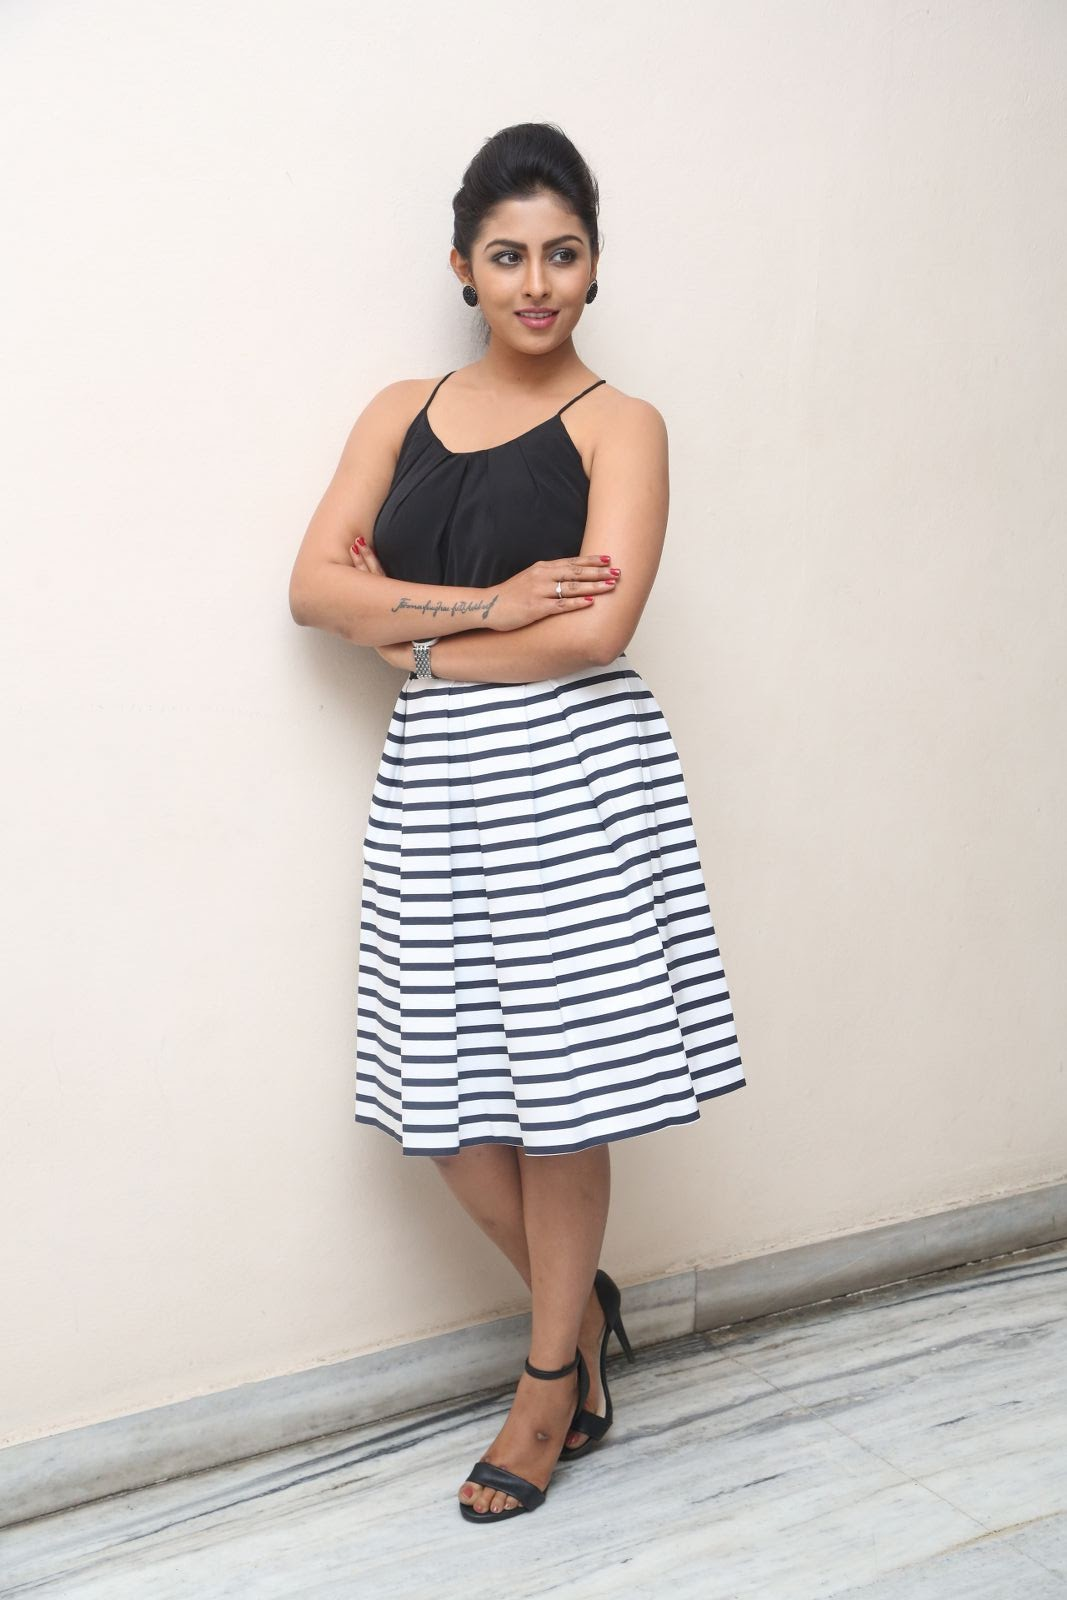 kruthika jayakumar new photos-HQ-Photo-13